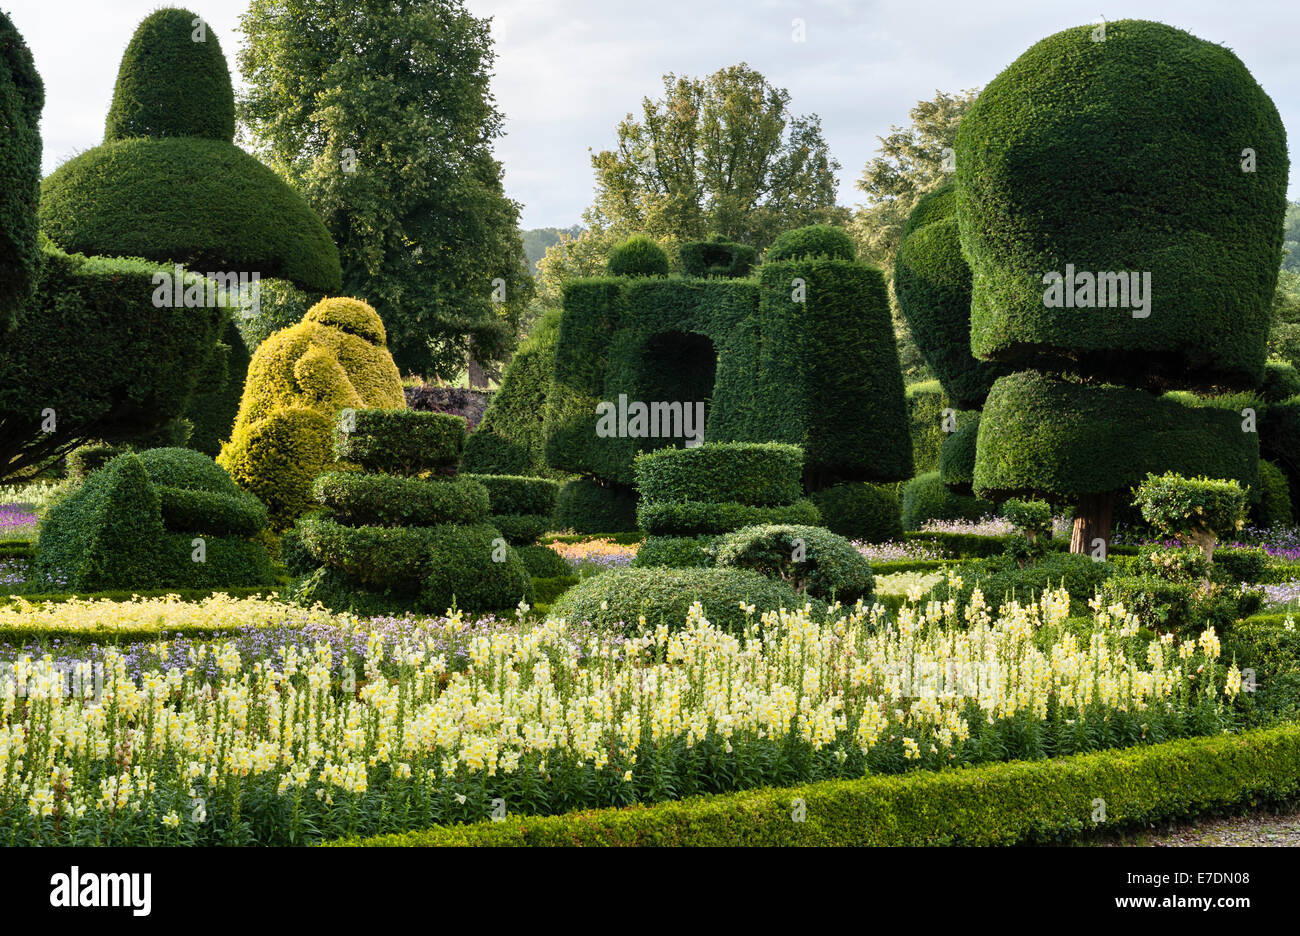 Levens Hall, Cumbria, UK. A late 16c manor house famous for its eccentric topiary garden, owned by the Bagot family - Stock Image